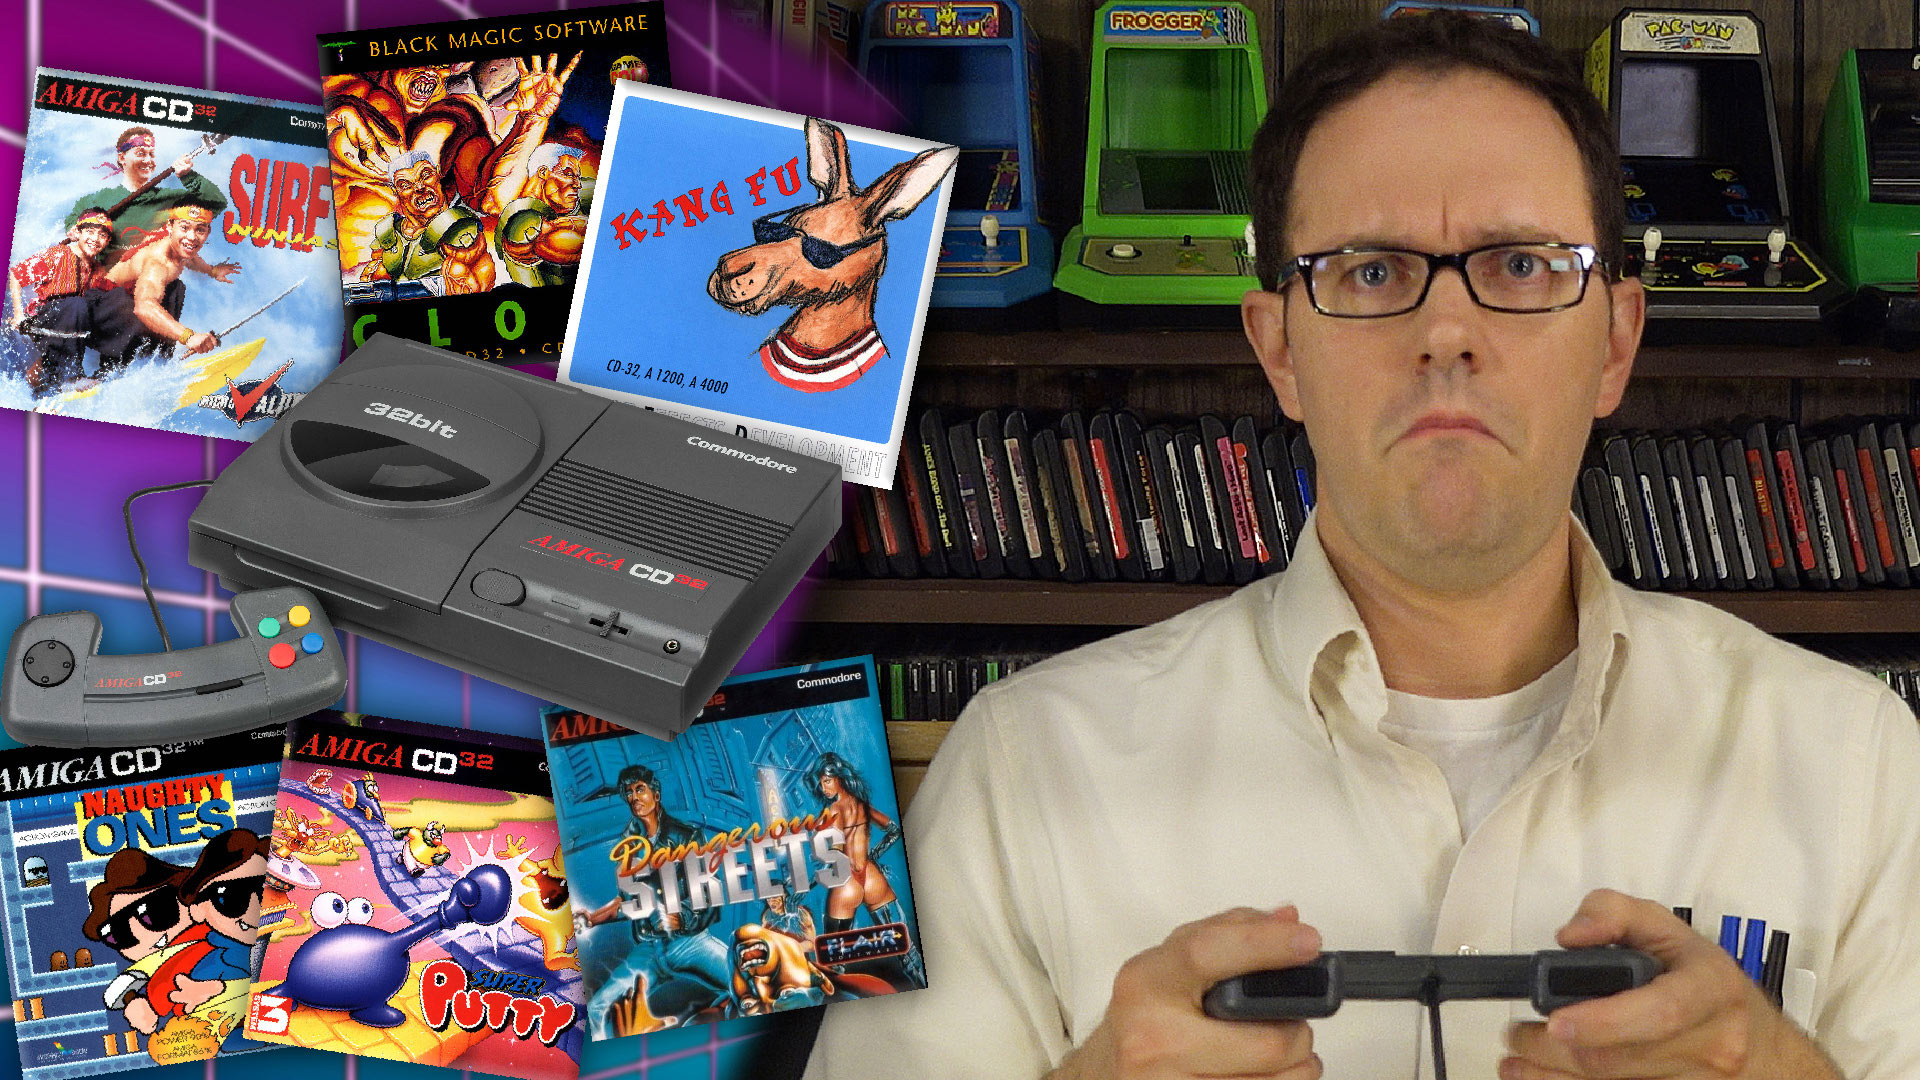 Best downloading sites for movies the angry video game nerd: bad.